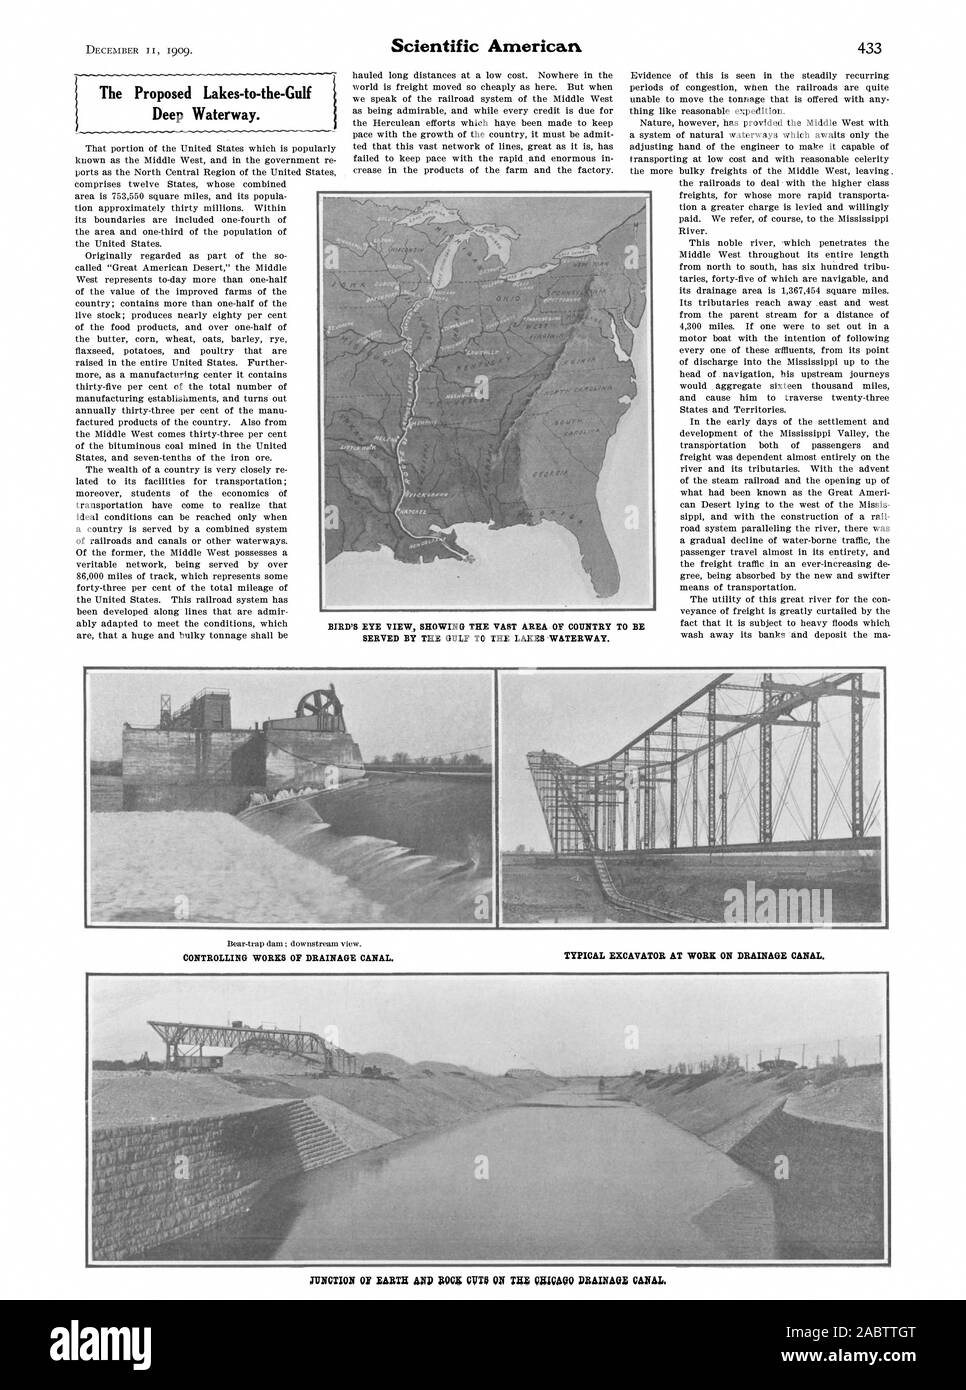 The proposed Lakes-to-the-Gulf Deep Waterway. Scientific American, 1909-12-11 Stock Photo